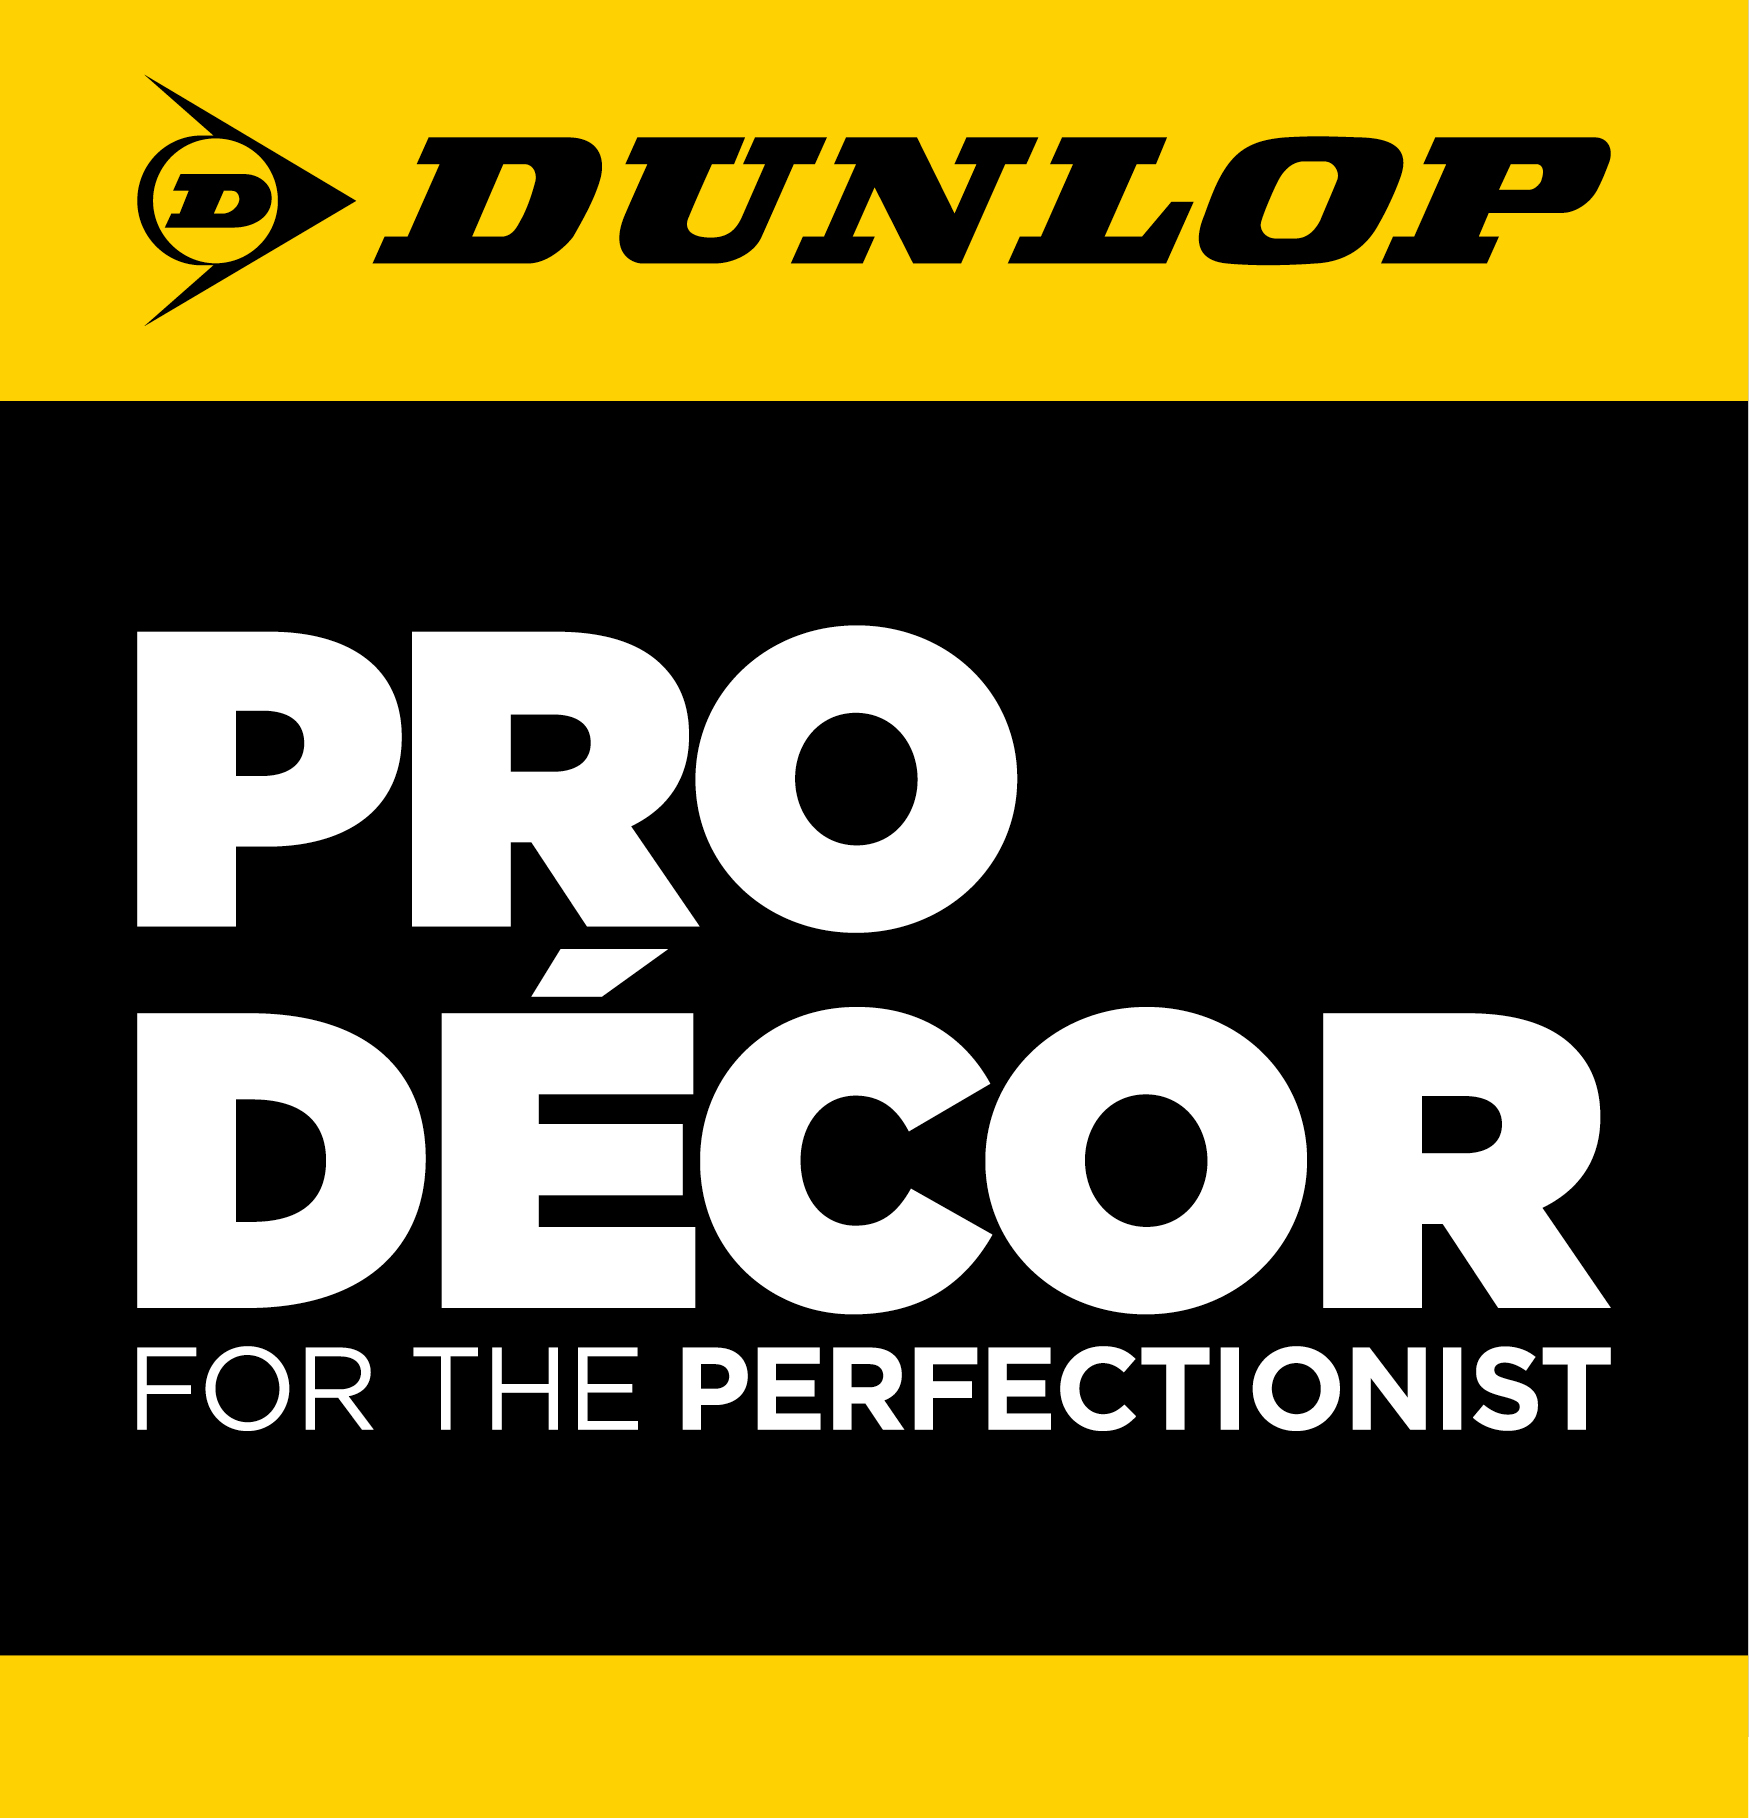 Dunlop Pro Decor will officially launch to the market in January 2014